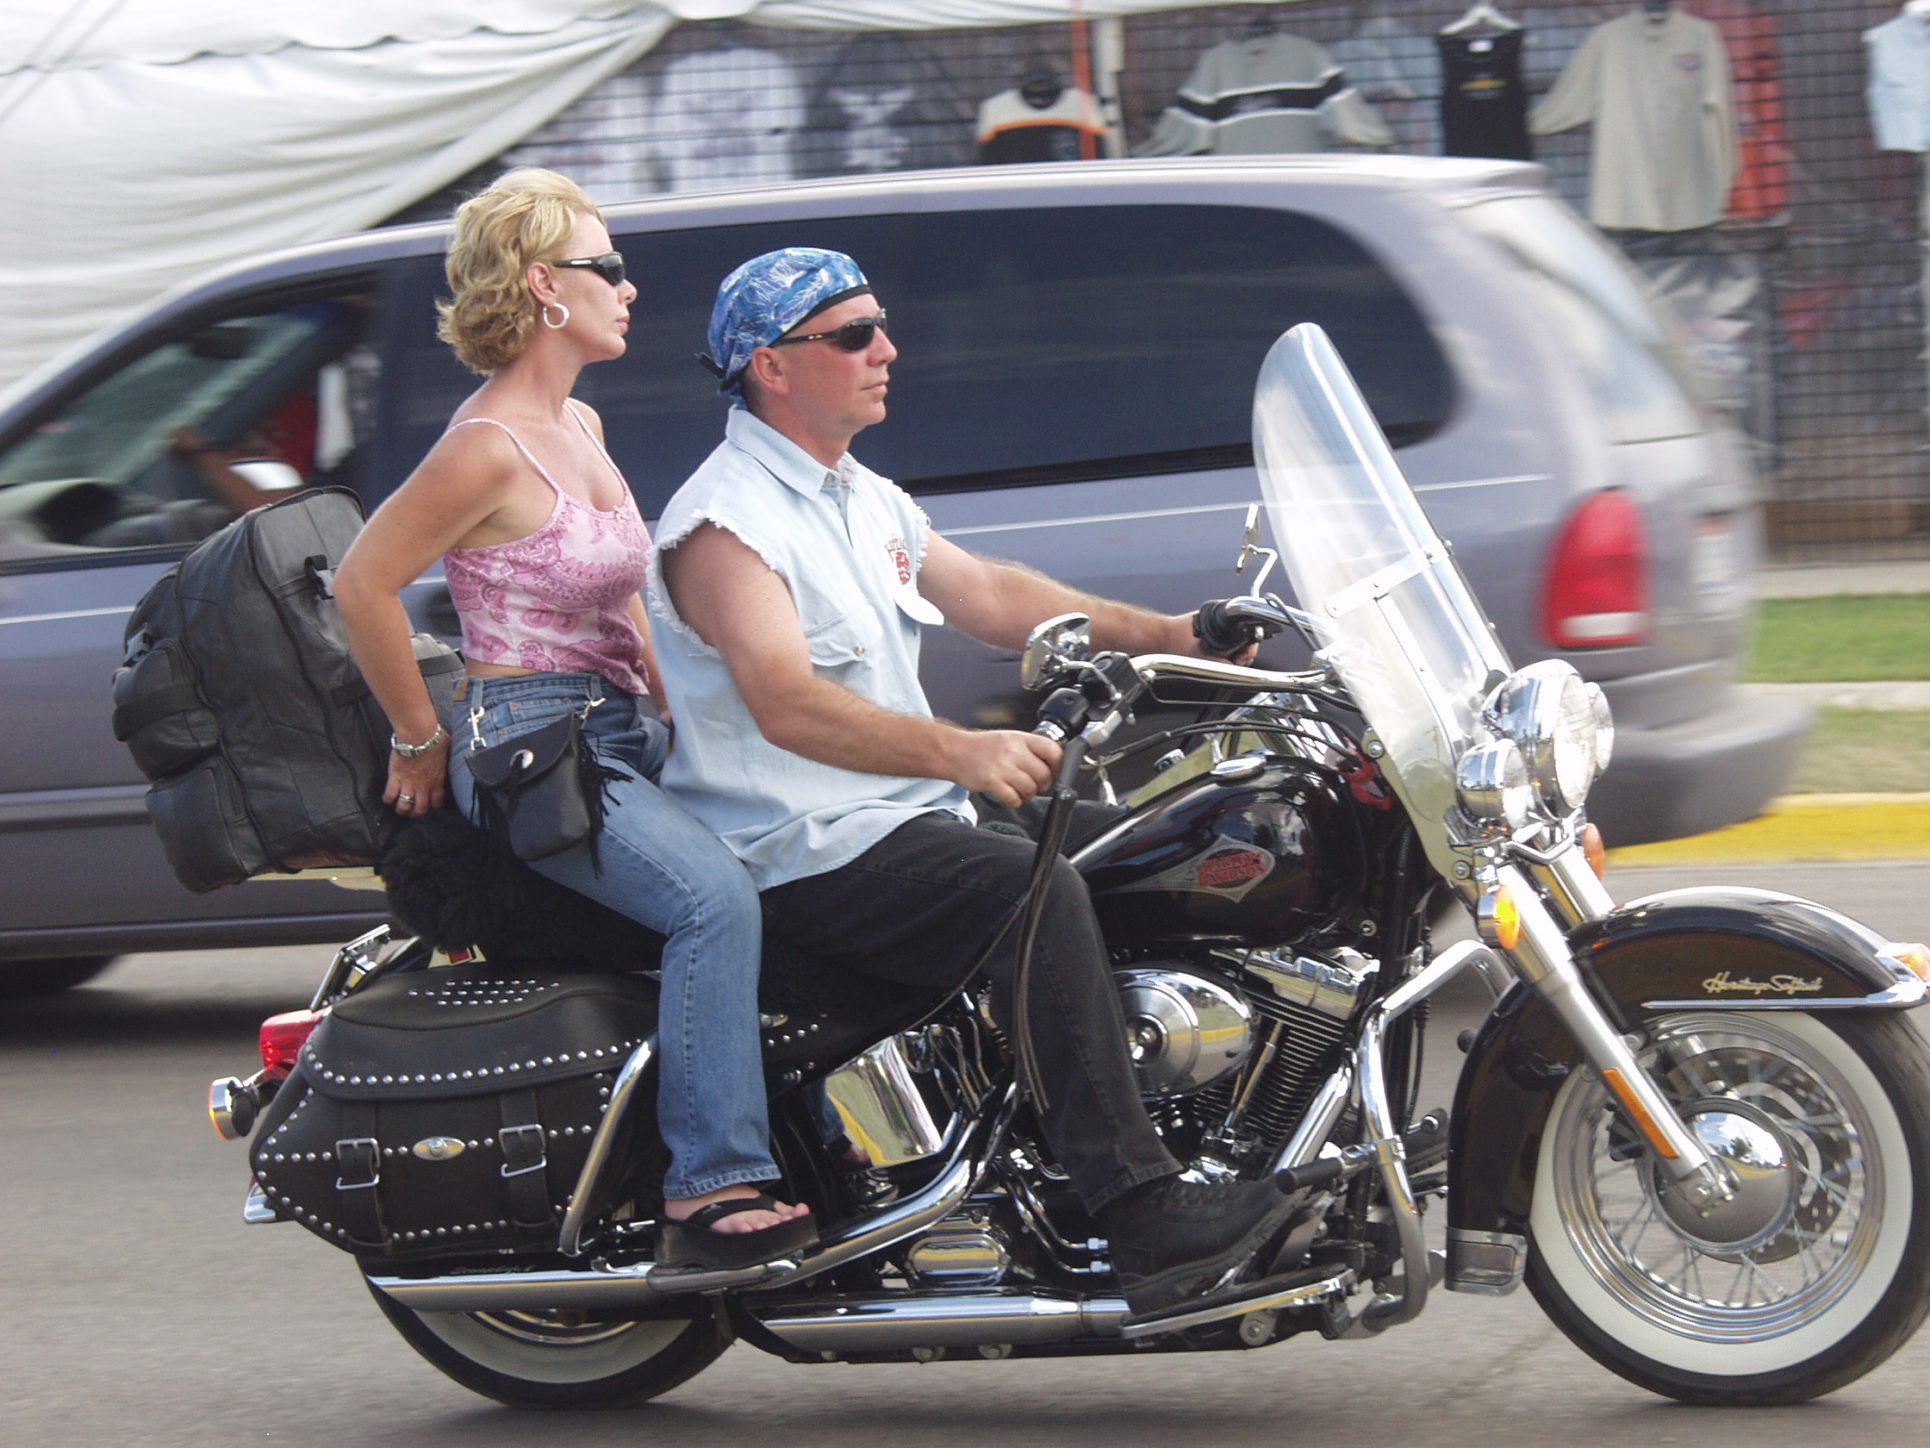 Two on Harley